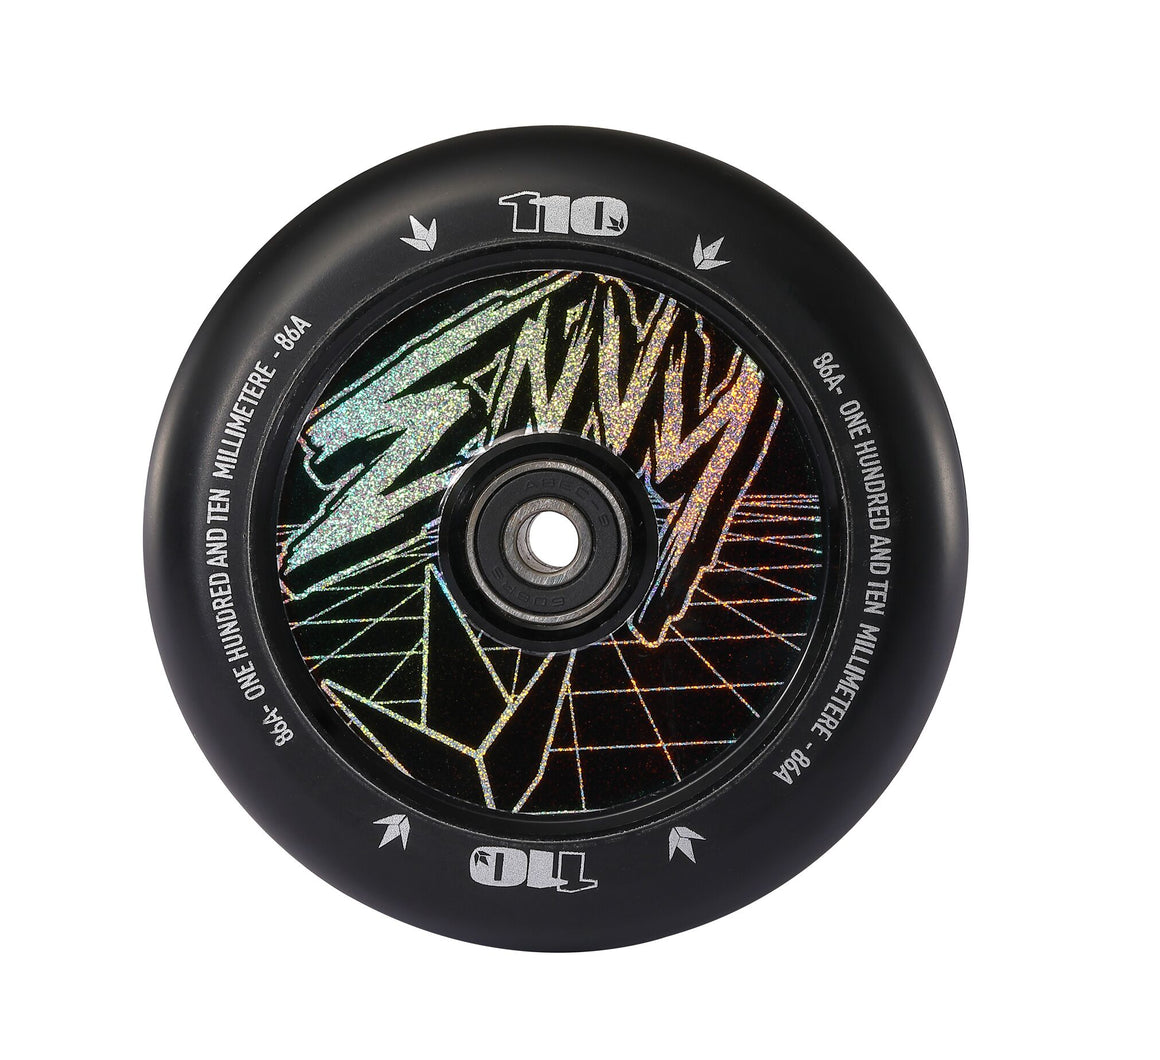 Envy Hollow Core Hologram Classic 110mm Scooter Wheels